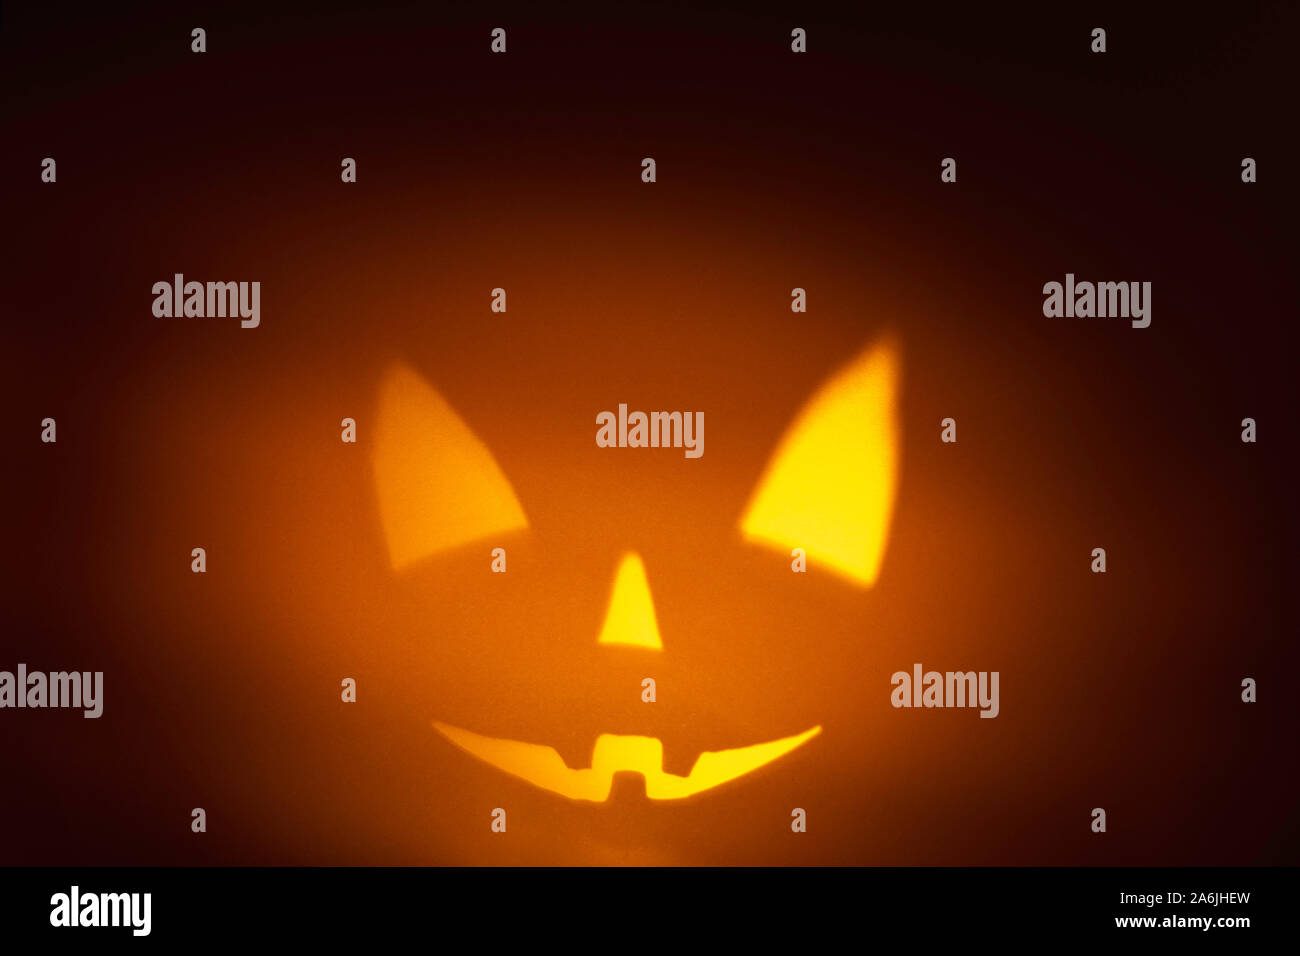 Character halloween scary pumpkin face on dark orange paper background. Scary smile face. Halloween horror background Stock Photo